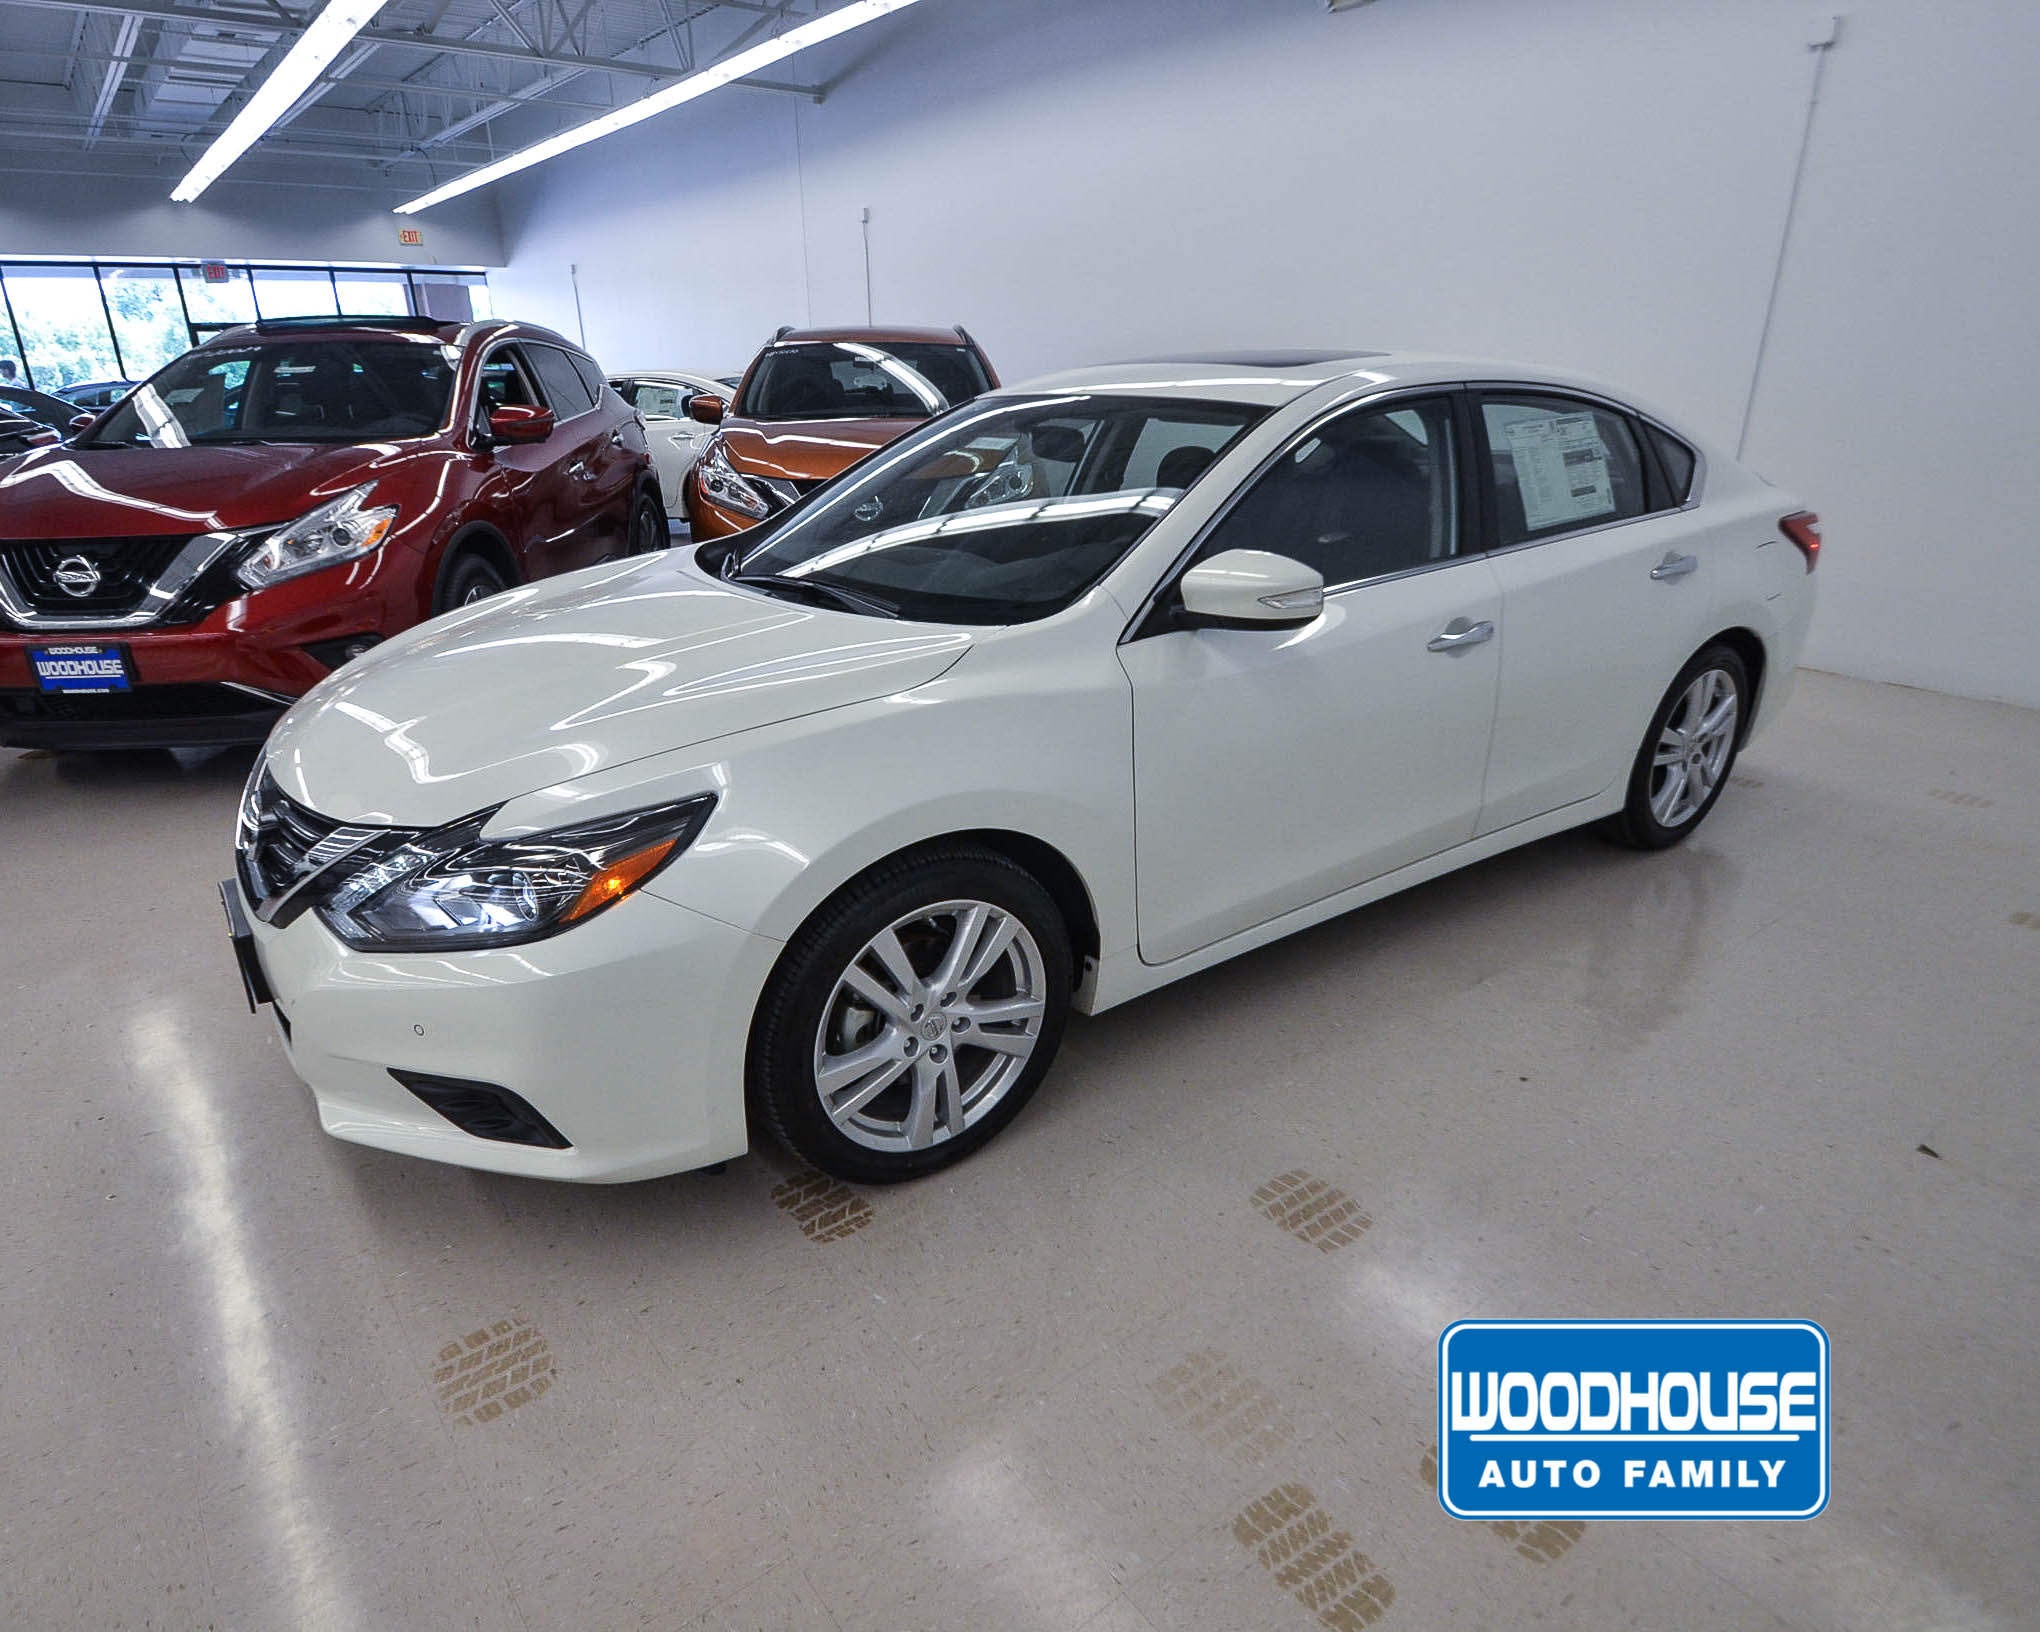 Woodhouse Hail Damage >> Nissan Altima for Sale | Woodhouse Auto